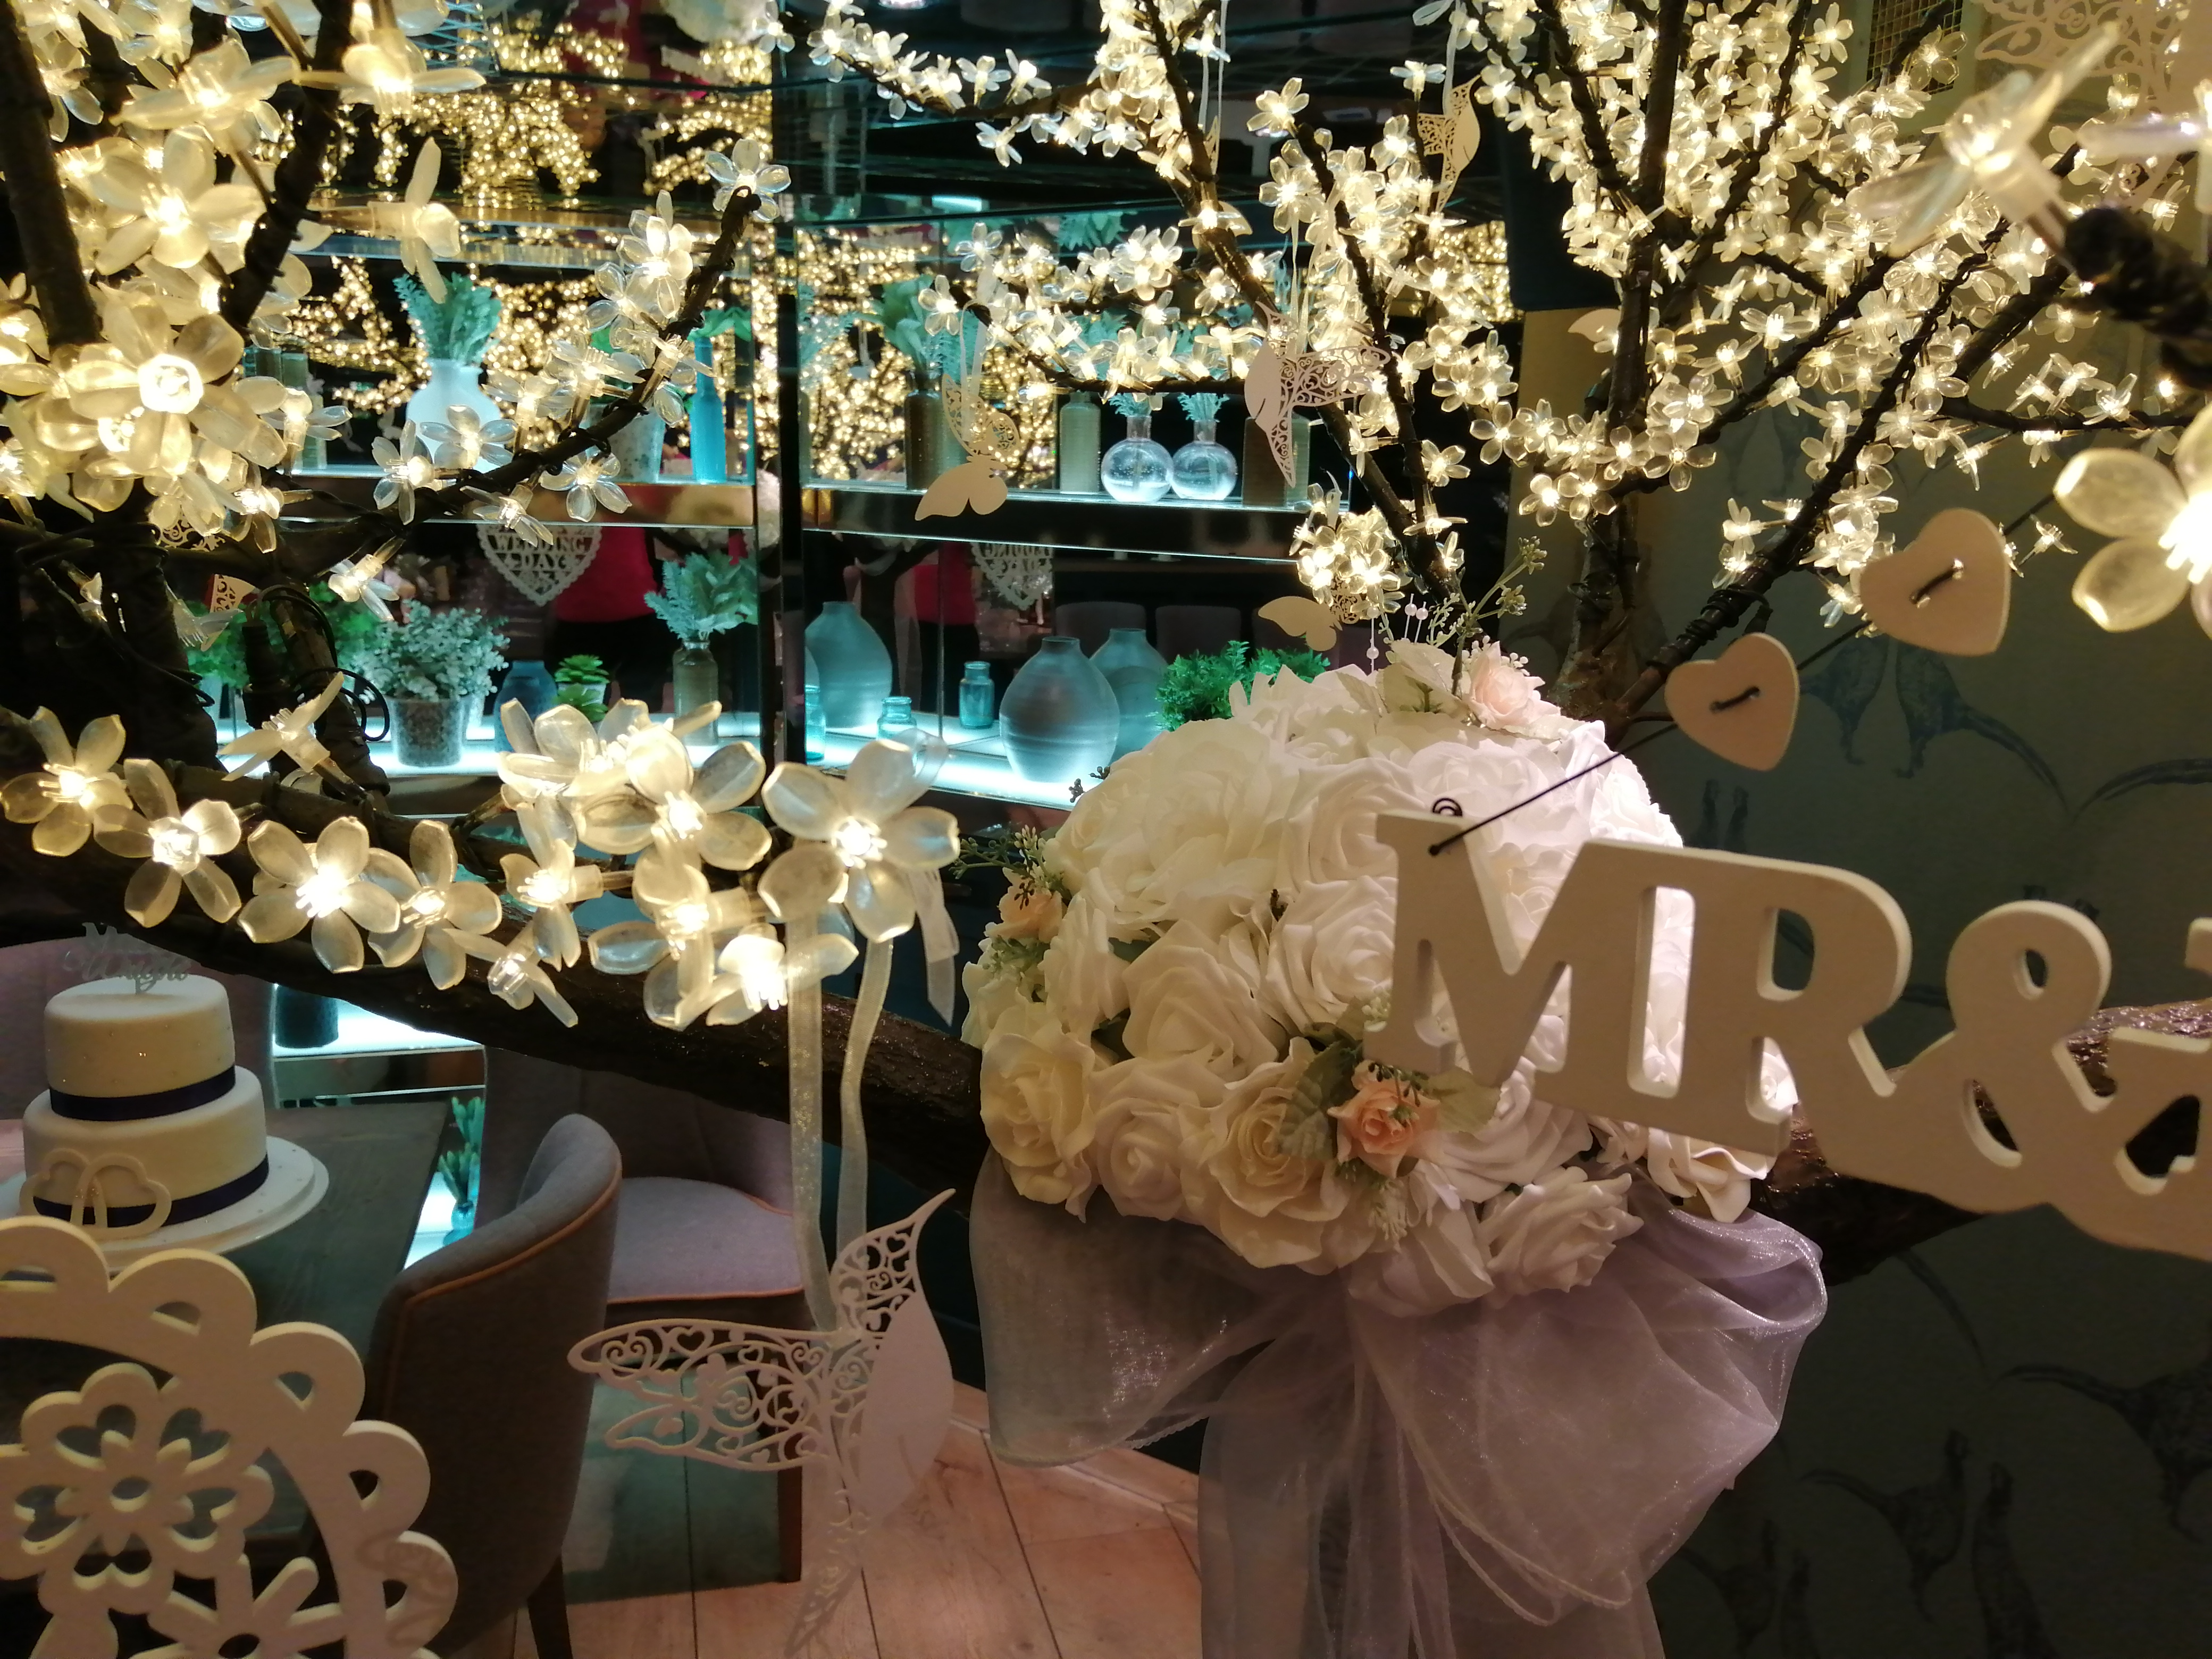 Wedding Wishes Tree at The Boffy